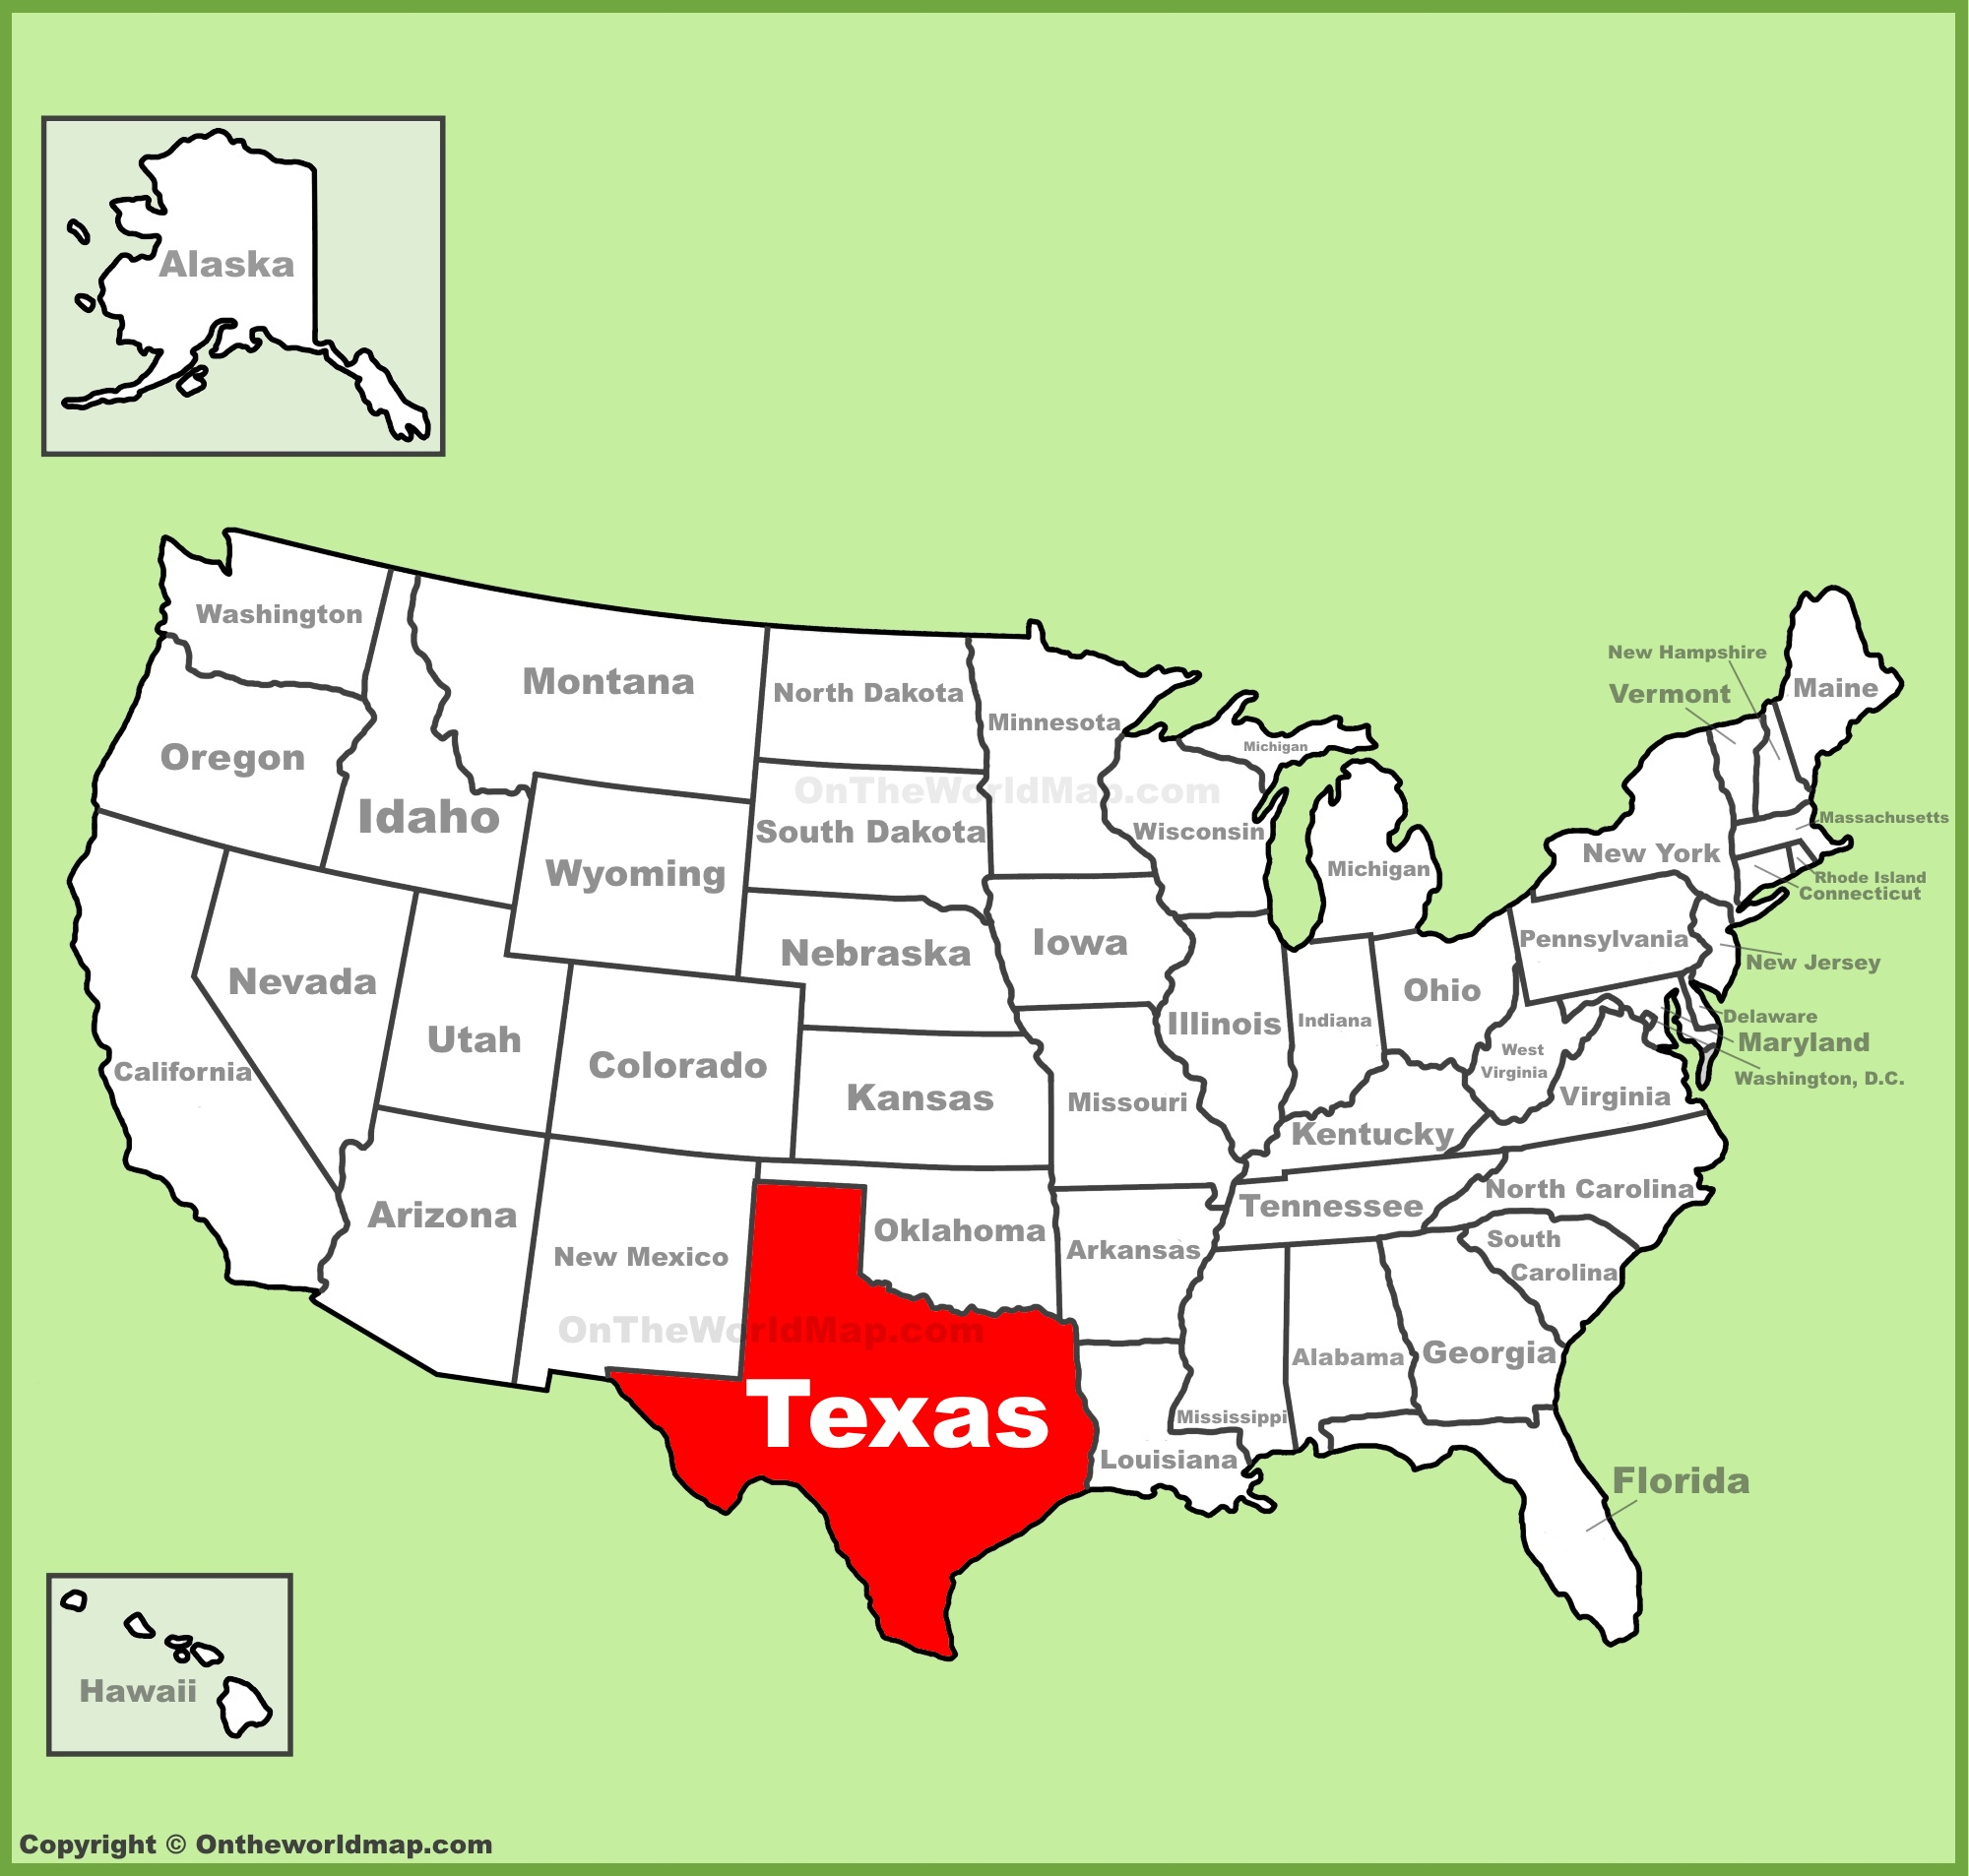 Texas State Maps USA Maps Of Texas TX - Maps of tx